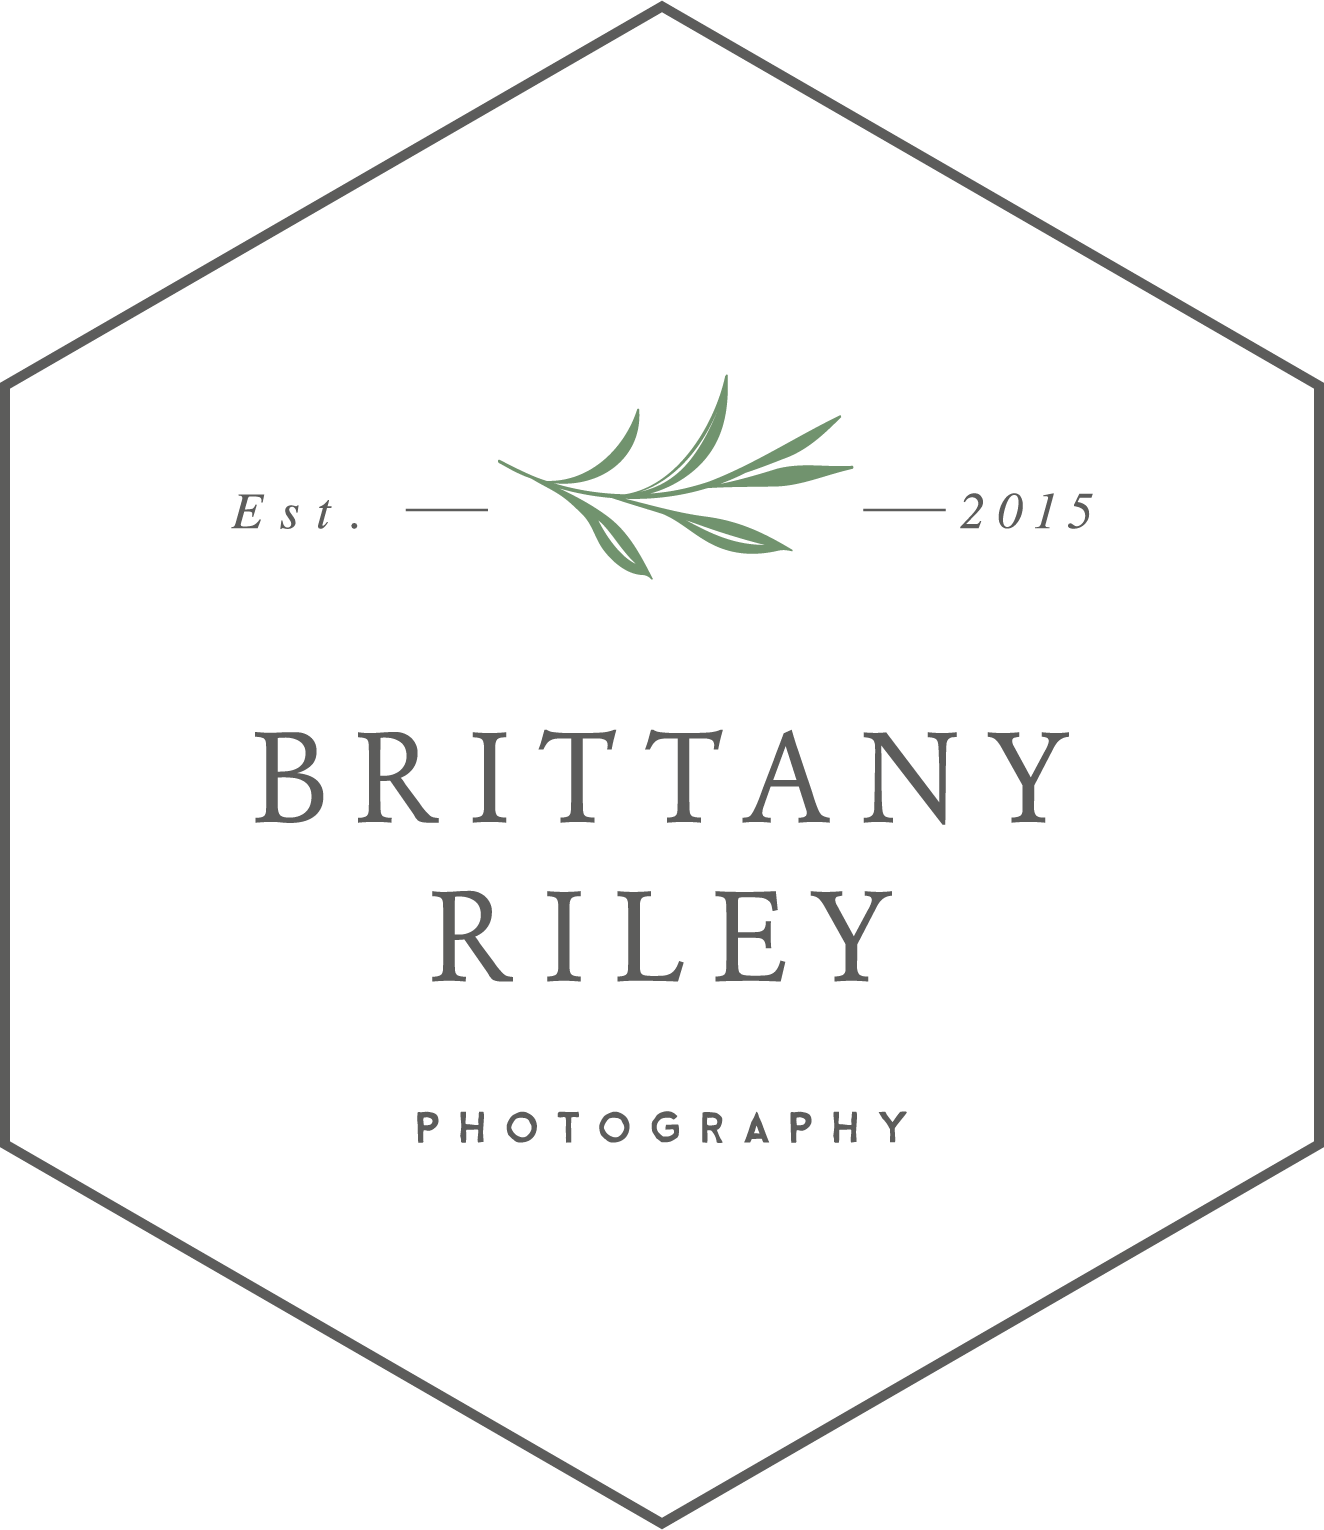 Brittany Riley Photography